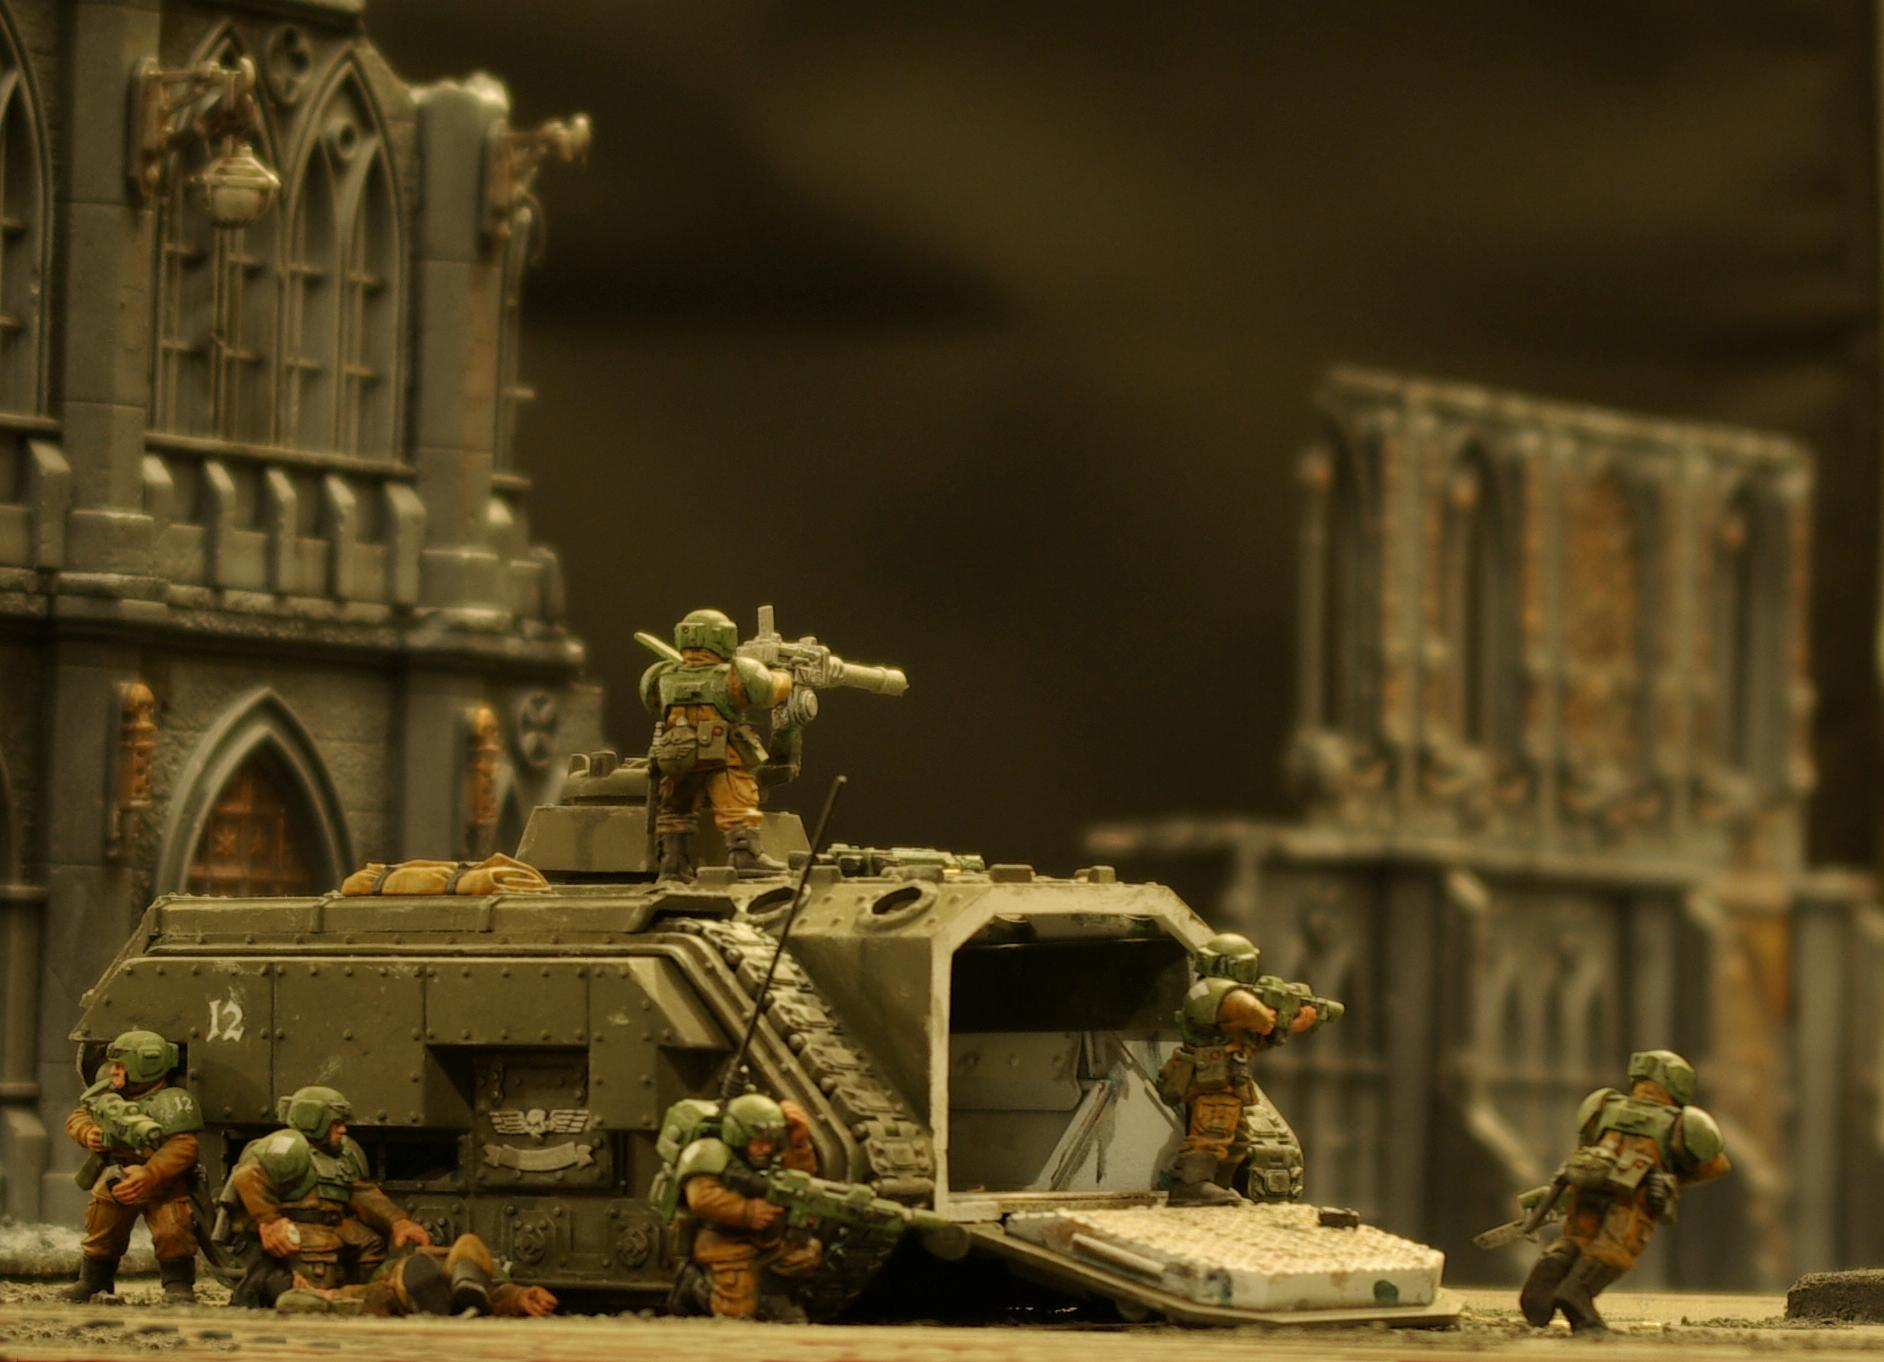 Action, Chimera, Cities Of Death, Imperial Guard, Medic, Warhammer 40,000